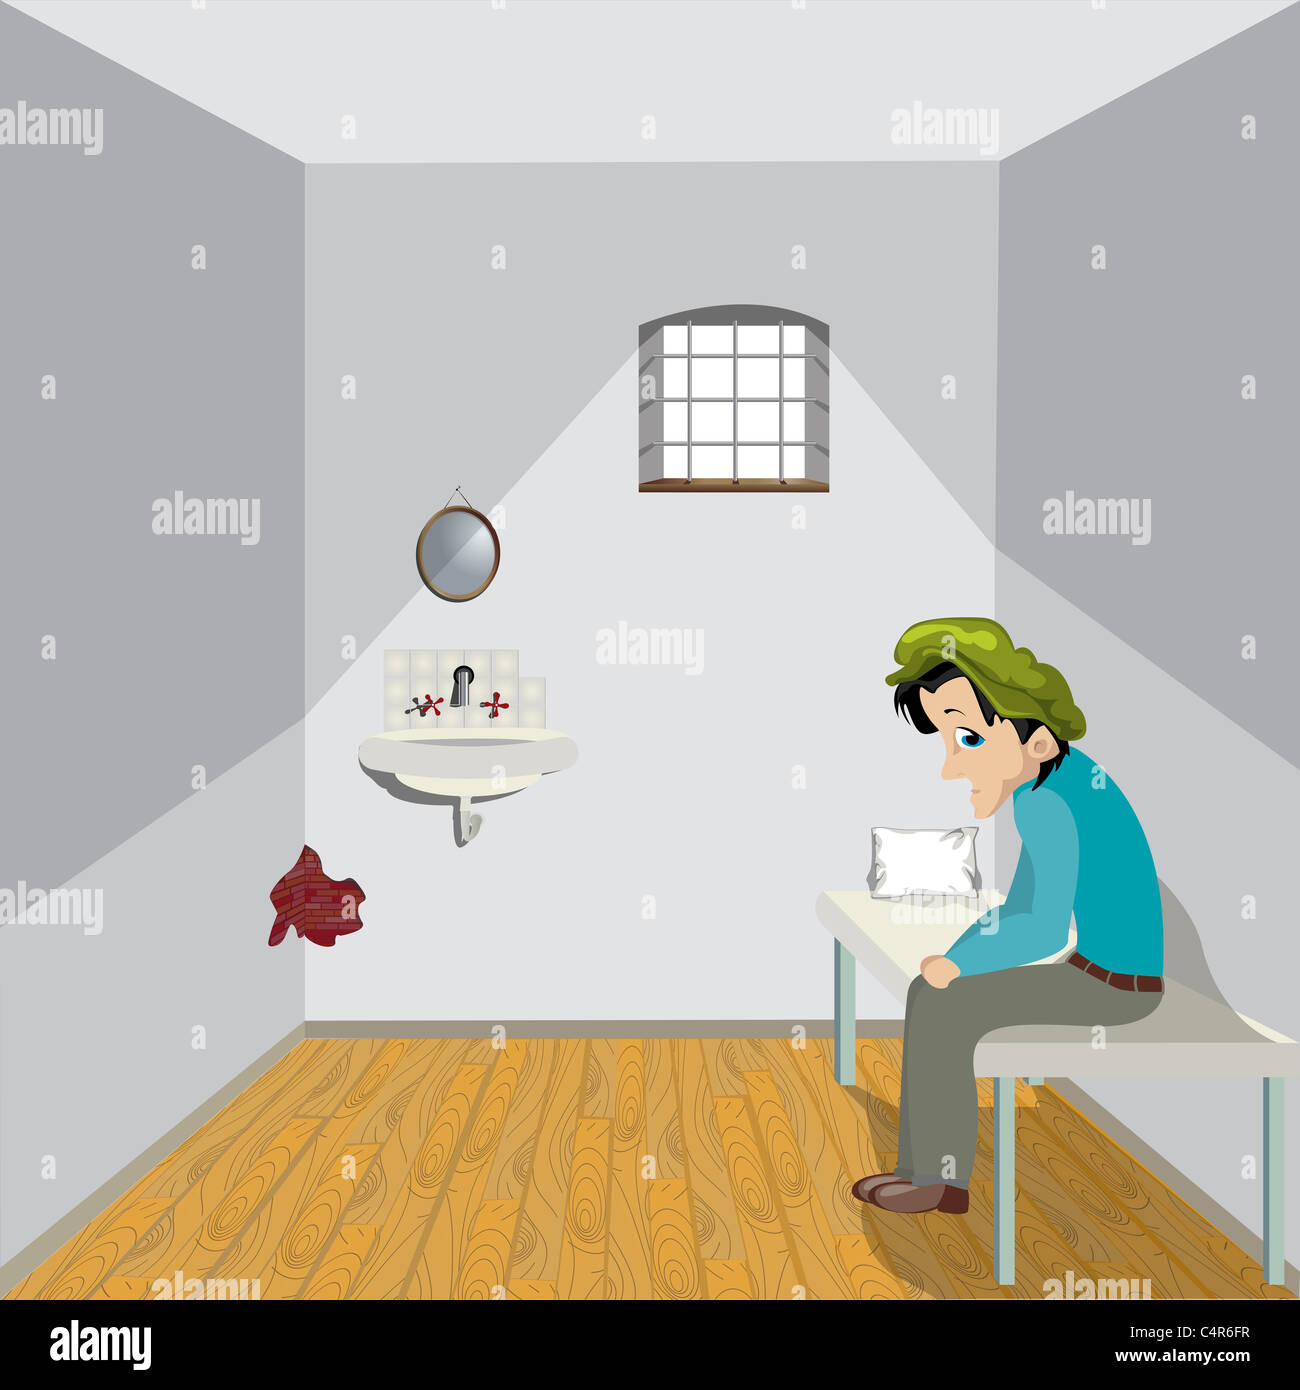 Cartoon drawing of a sad man in a lonely room